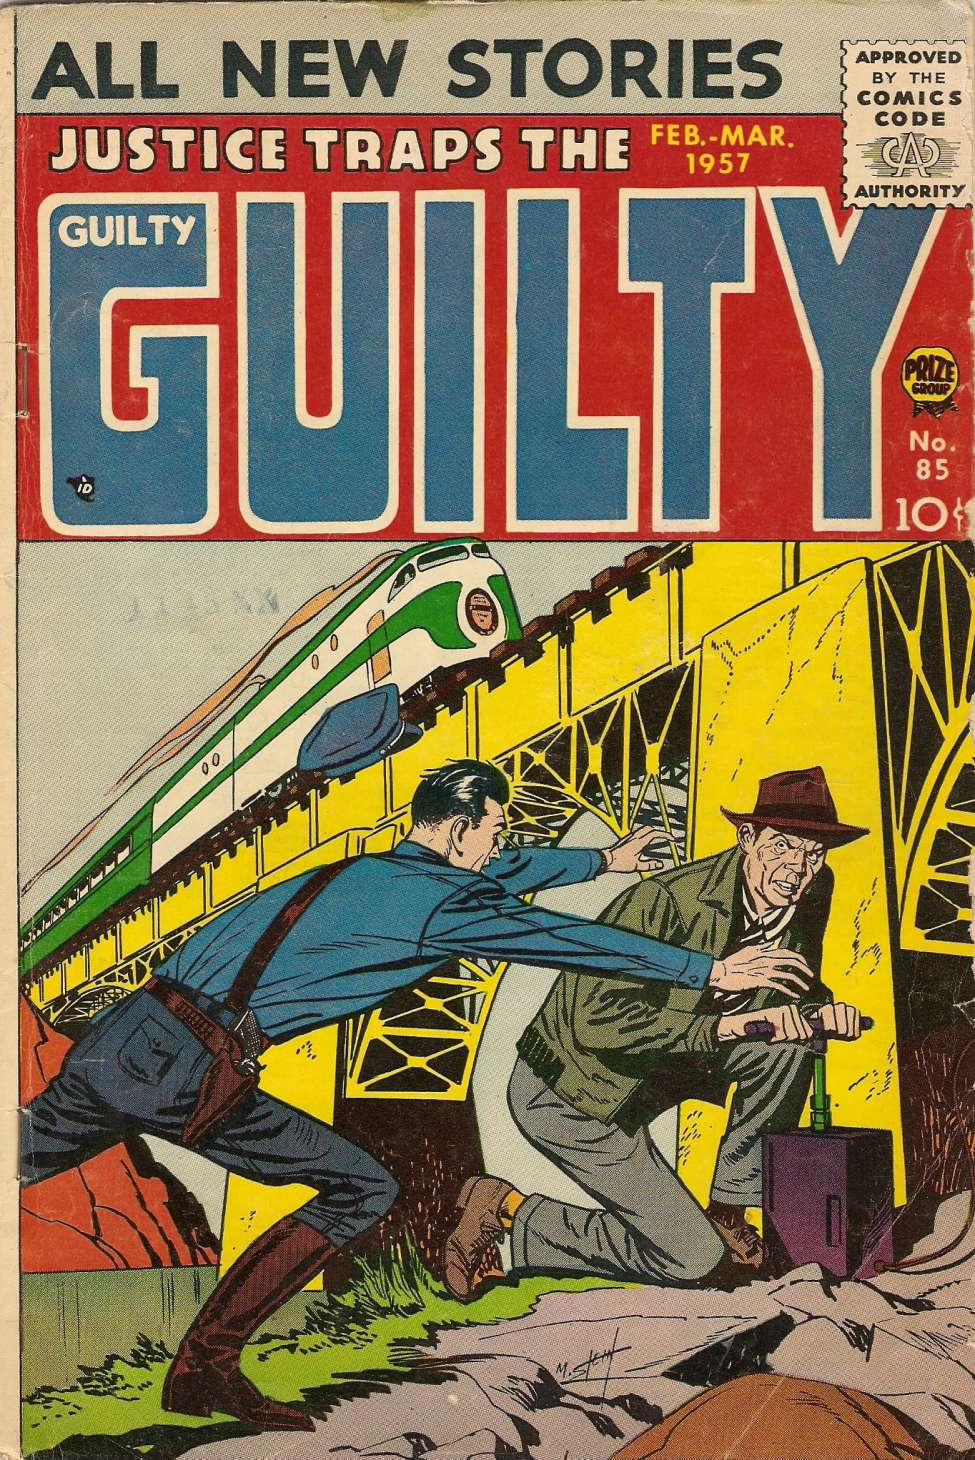 Comic Book Cover For Justice Traps the Guilty v10 1 (85)